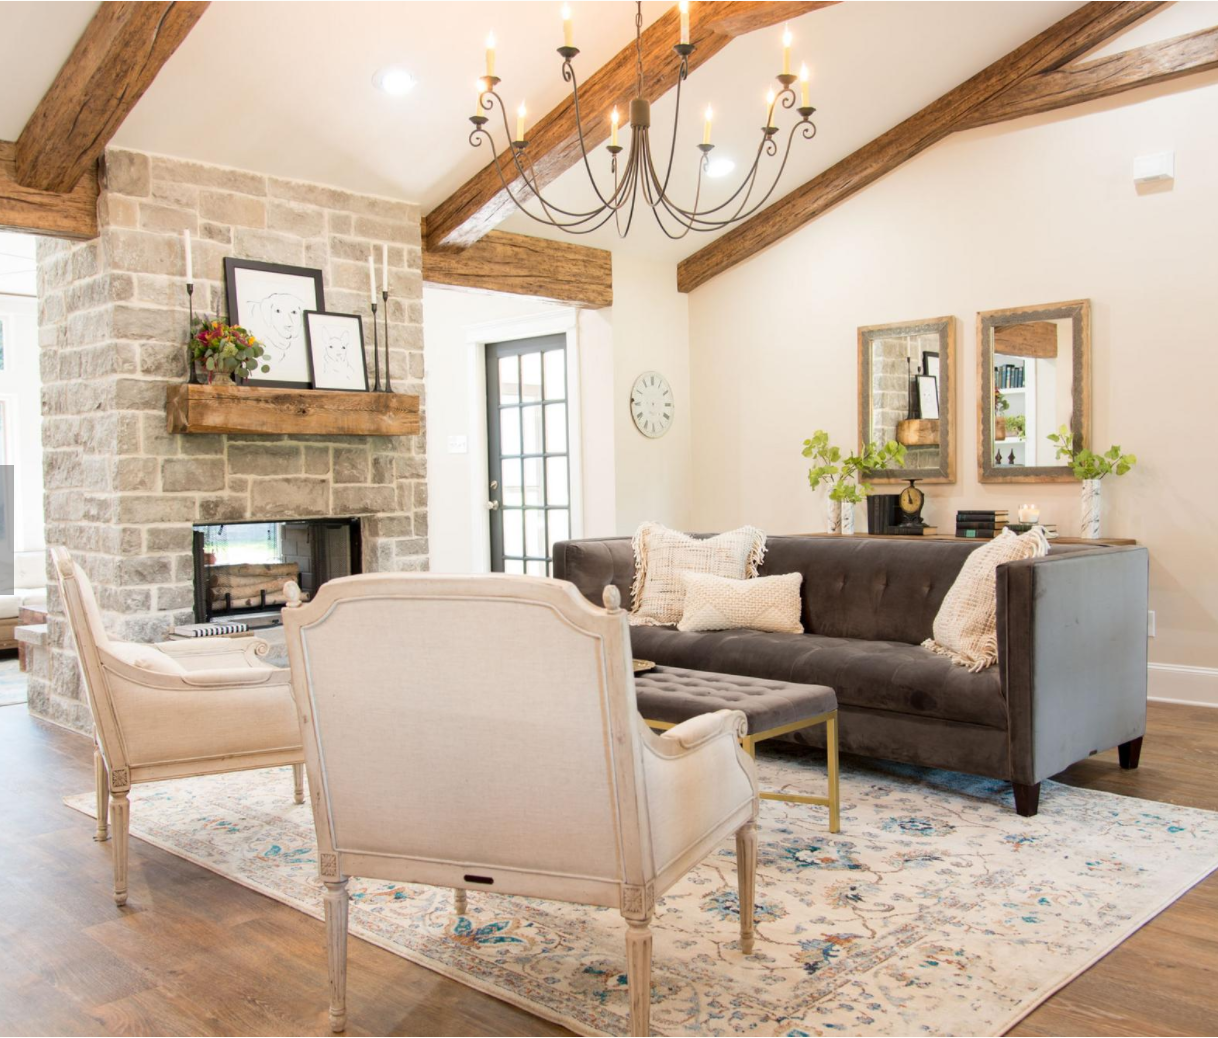 Fixer Uper: Fixer Upper Season 4 Episode 1 Living Room